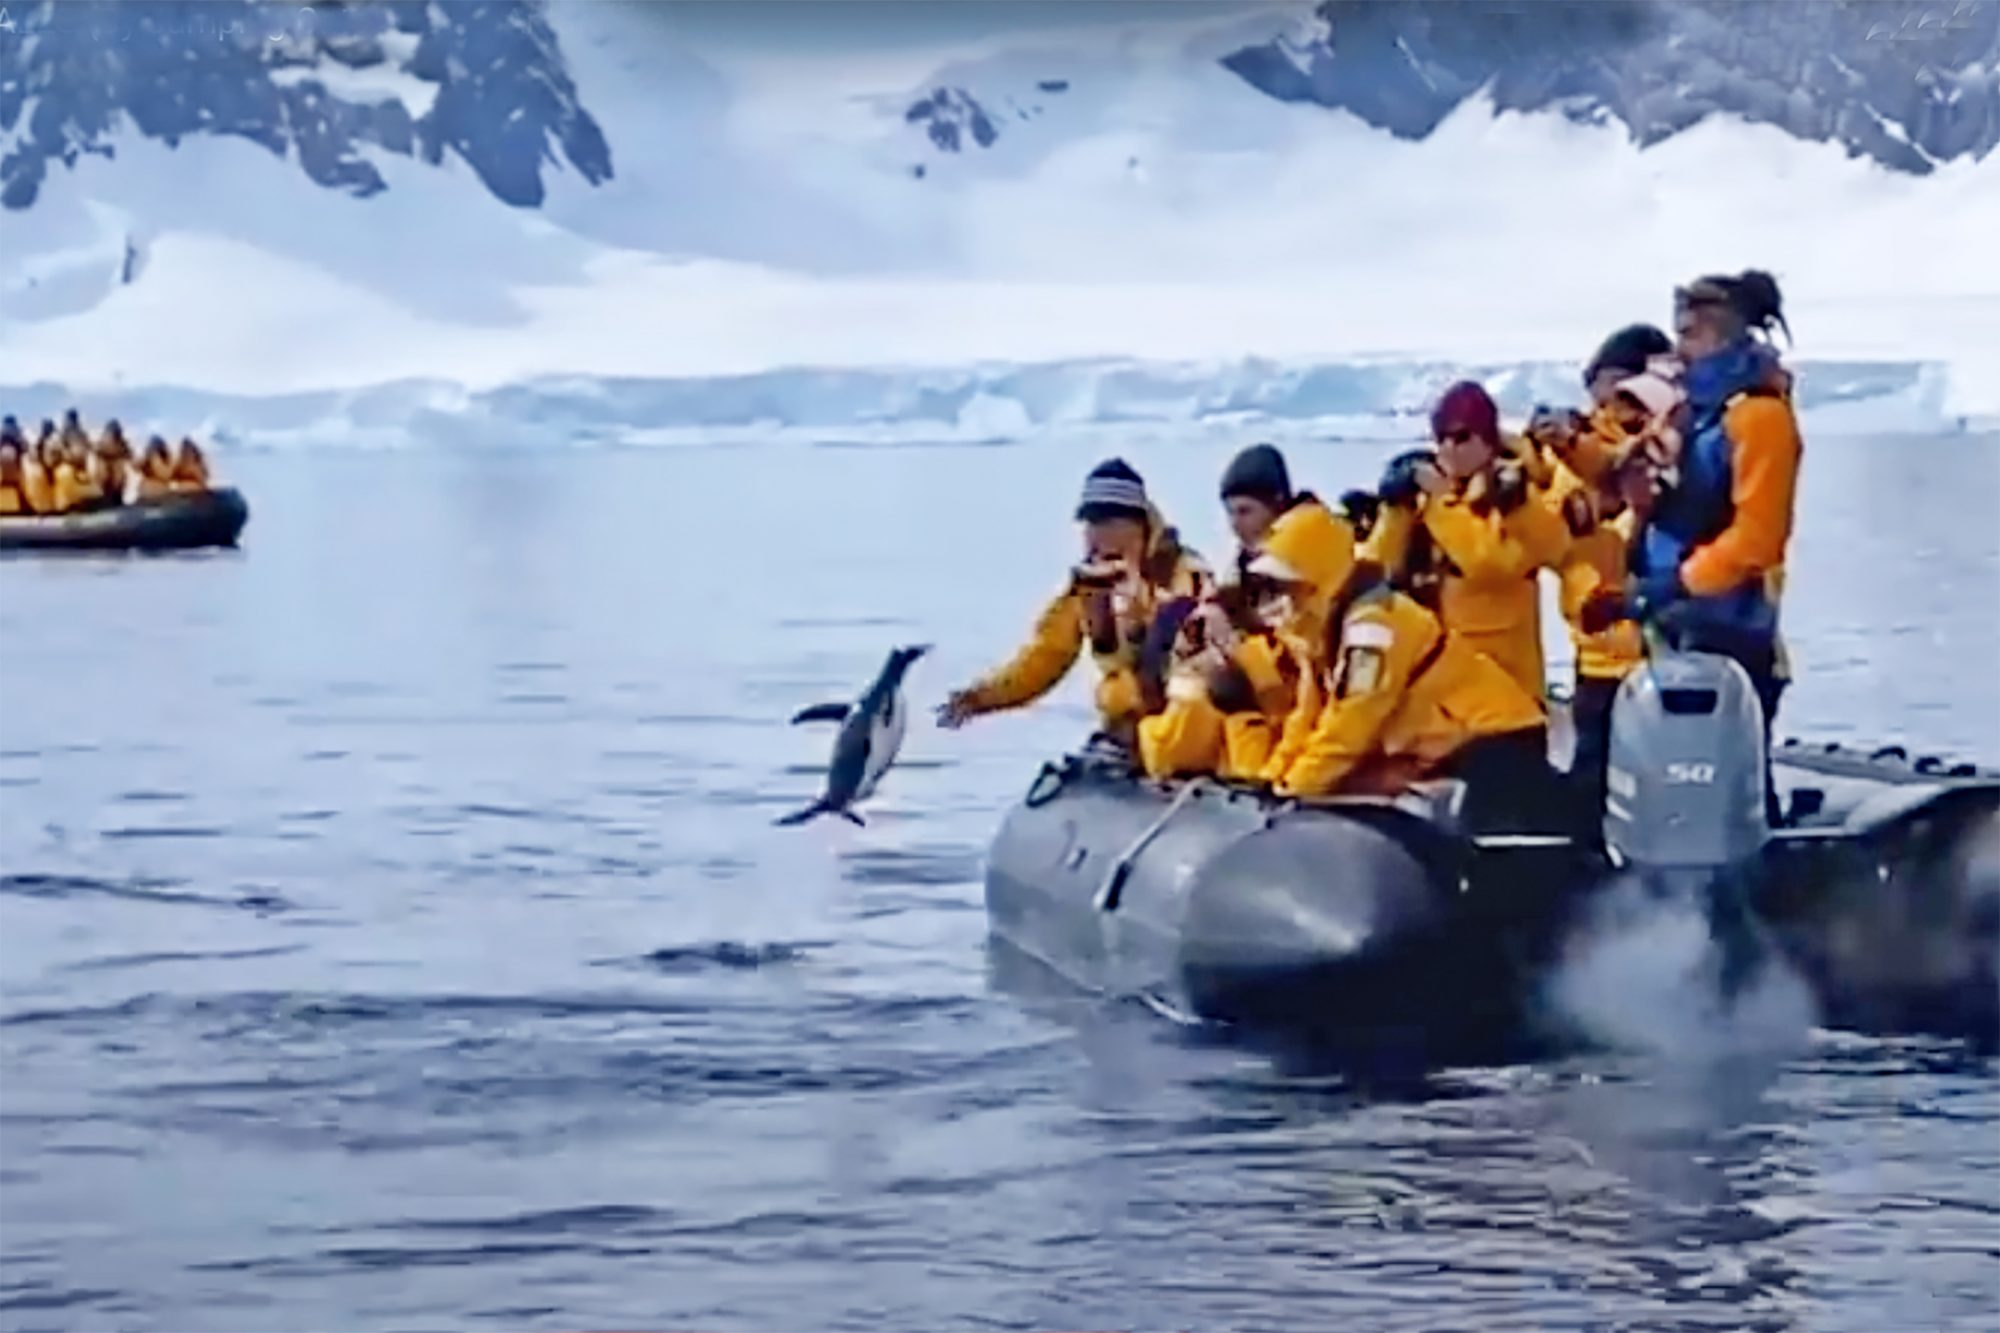 boat rescuing a penguin